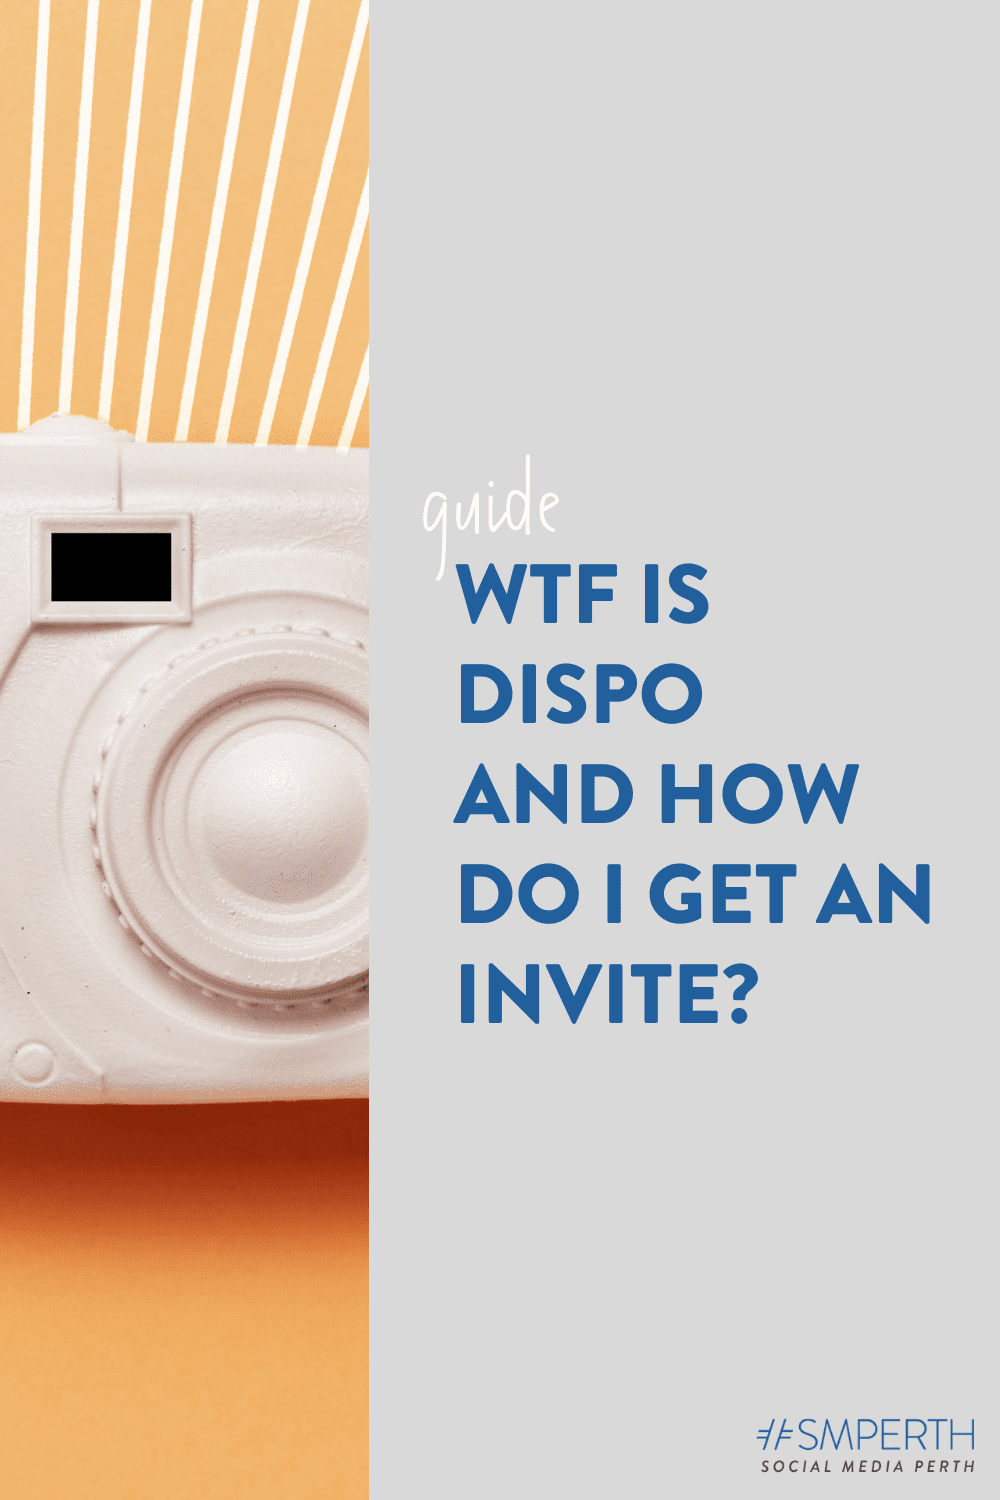 WTF is Dispo, and how do I get an invite?